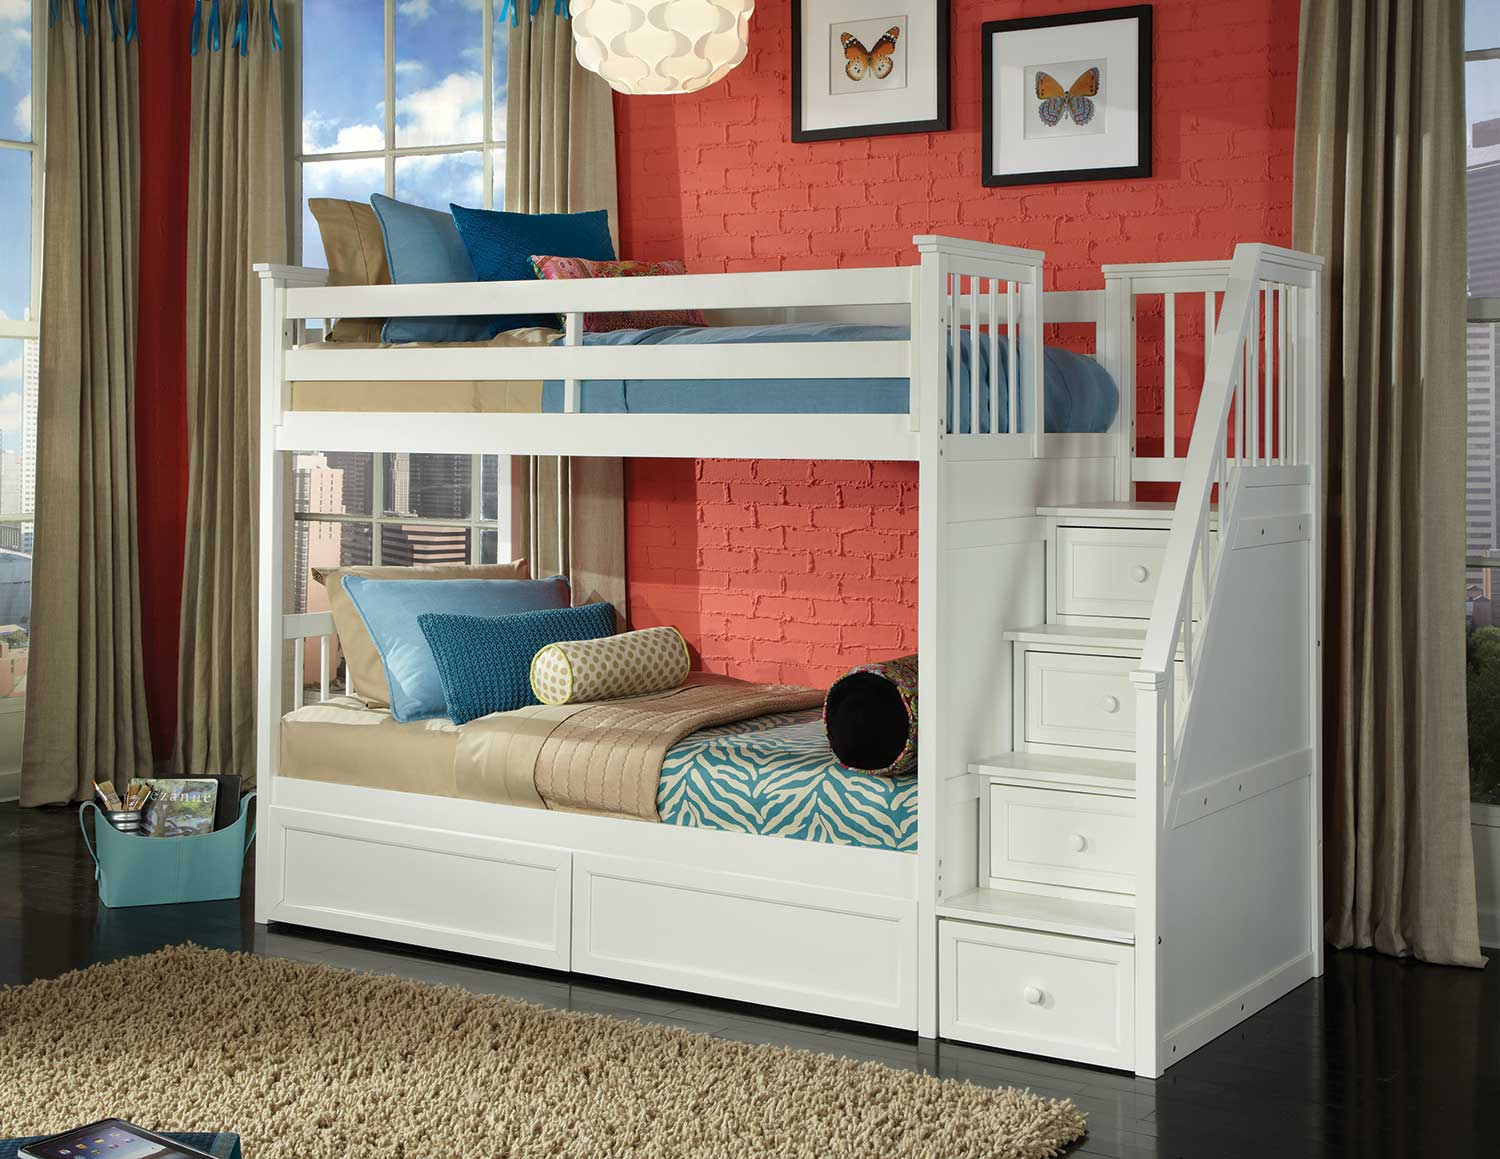 NE Kids SchoolHouse Stair Bunk Bed with Storage - White Finish